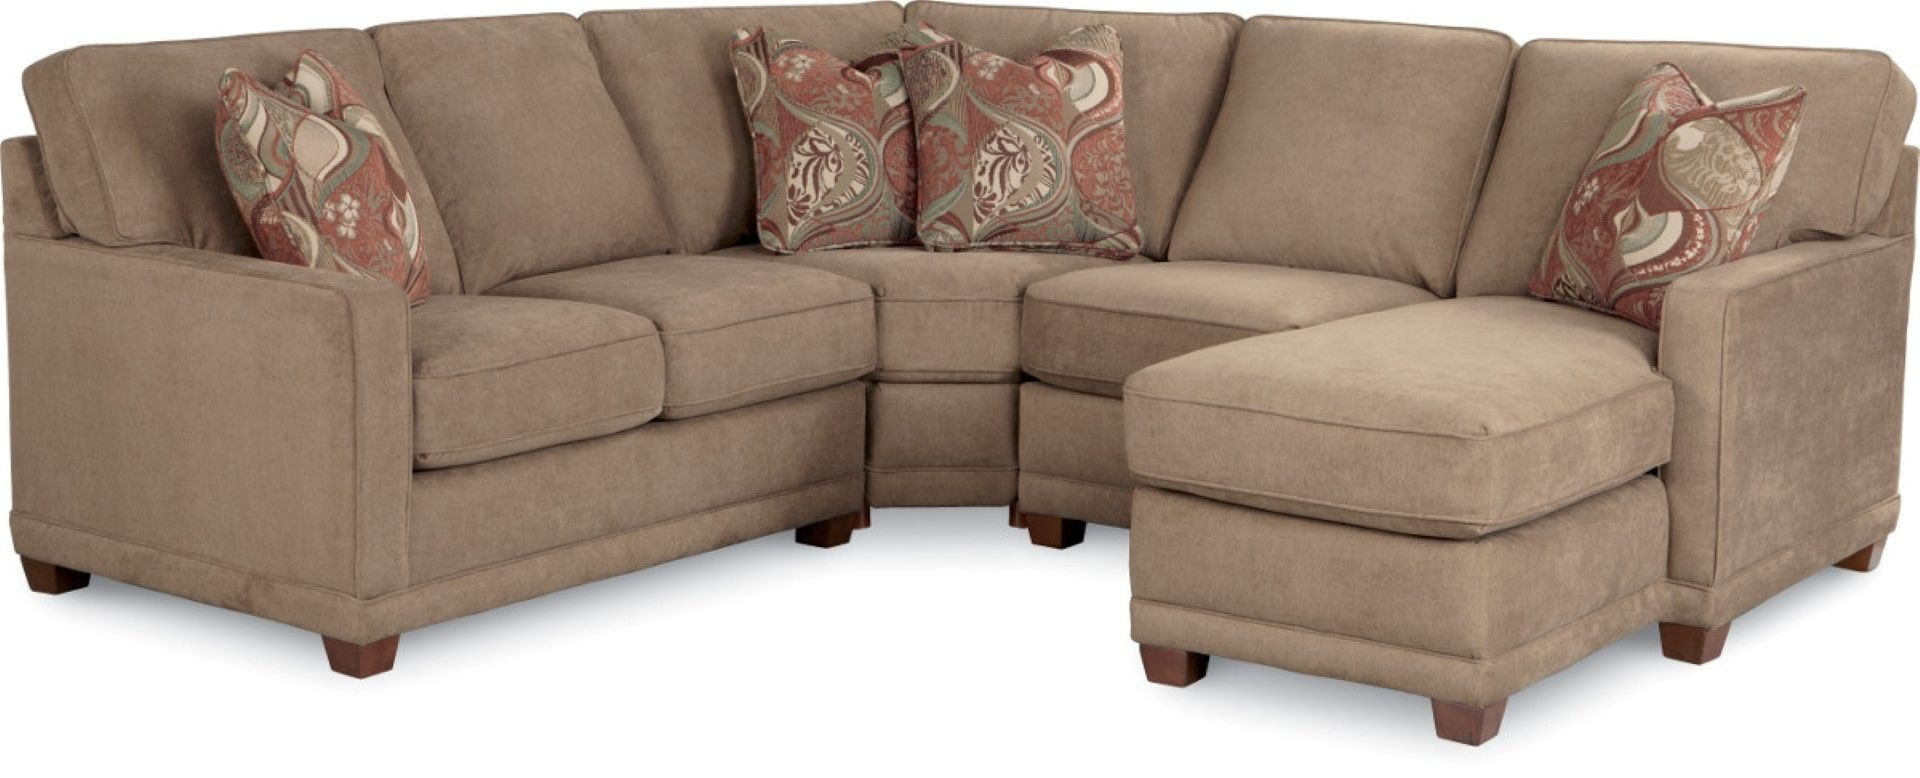 Kennedy Sectional Sofa Lazy Boy Lazyboy Sectional Sectional